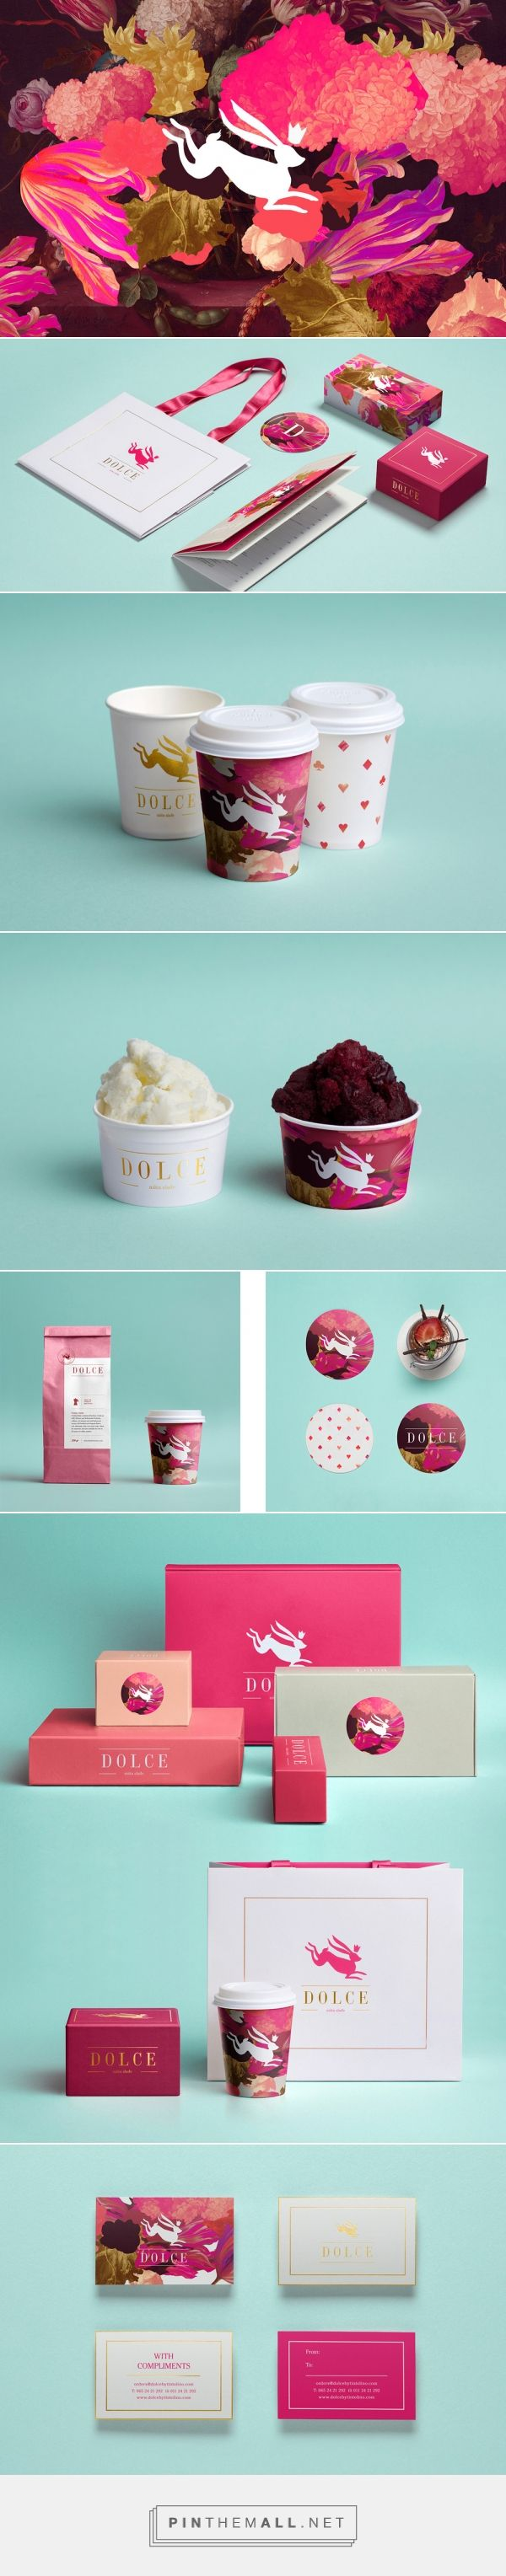 Dolce — Dolce cake shop and bakery by Metaklinika Design Studio